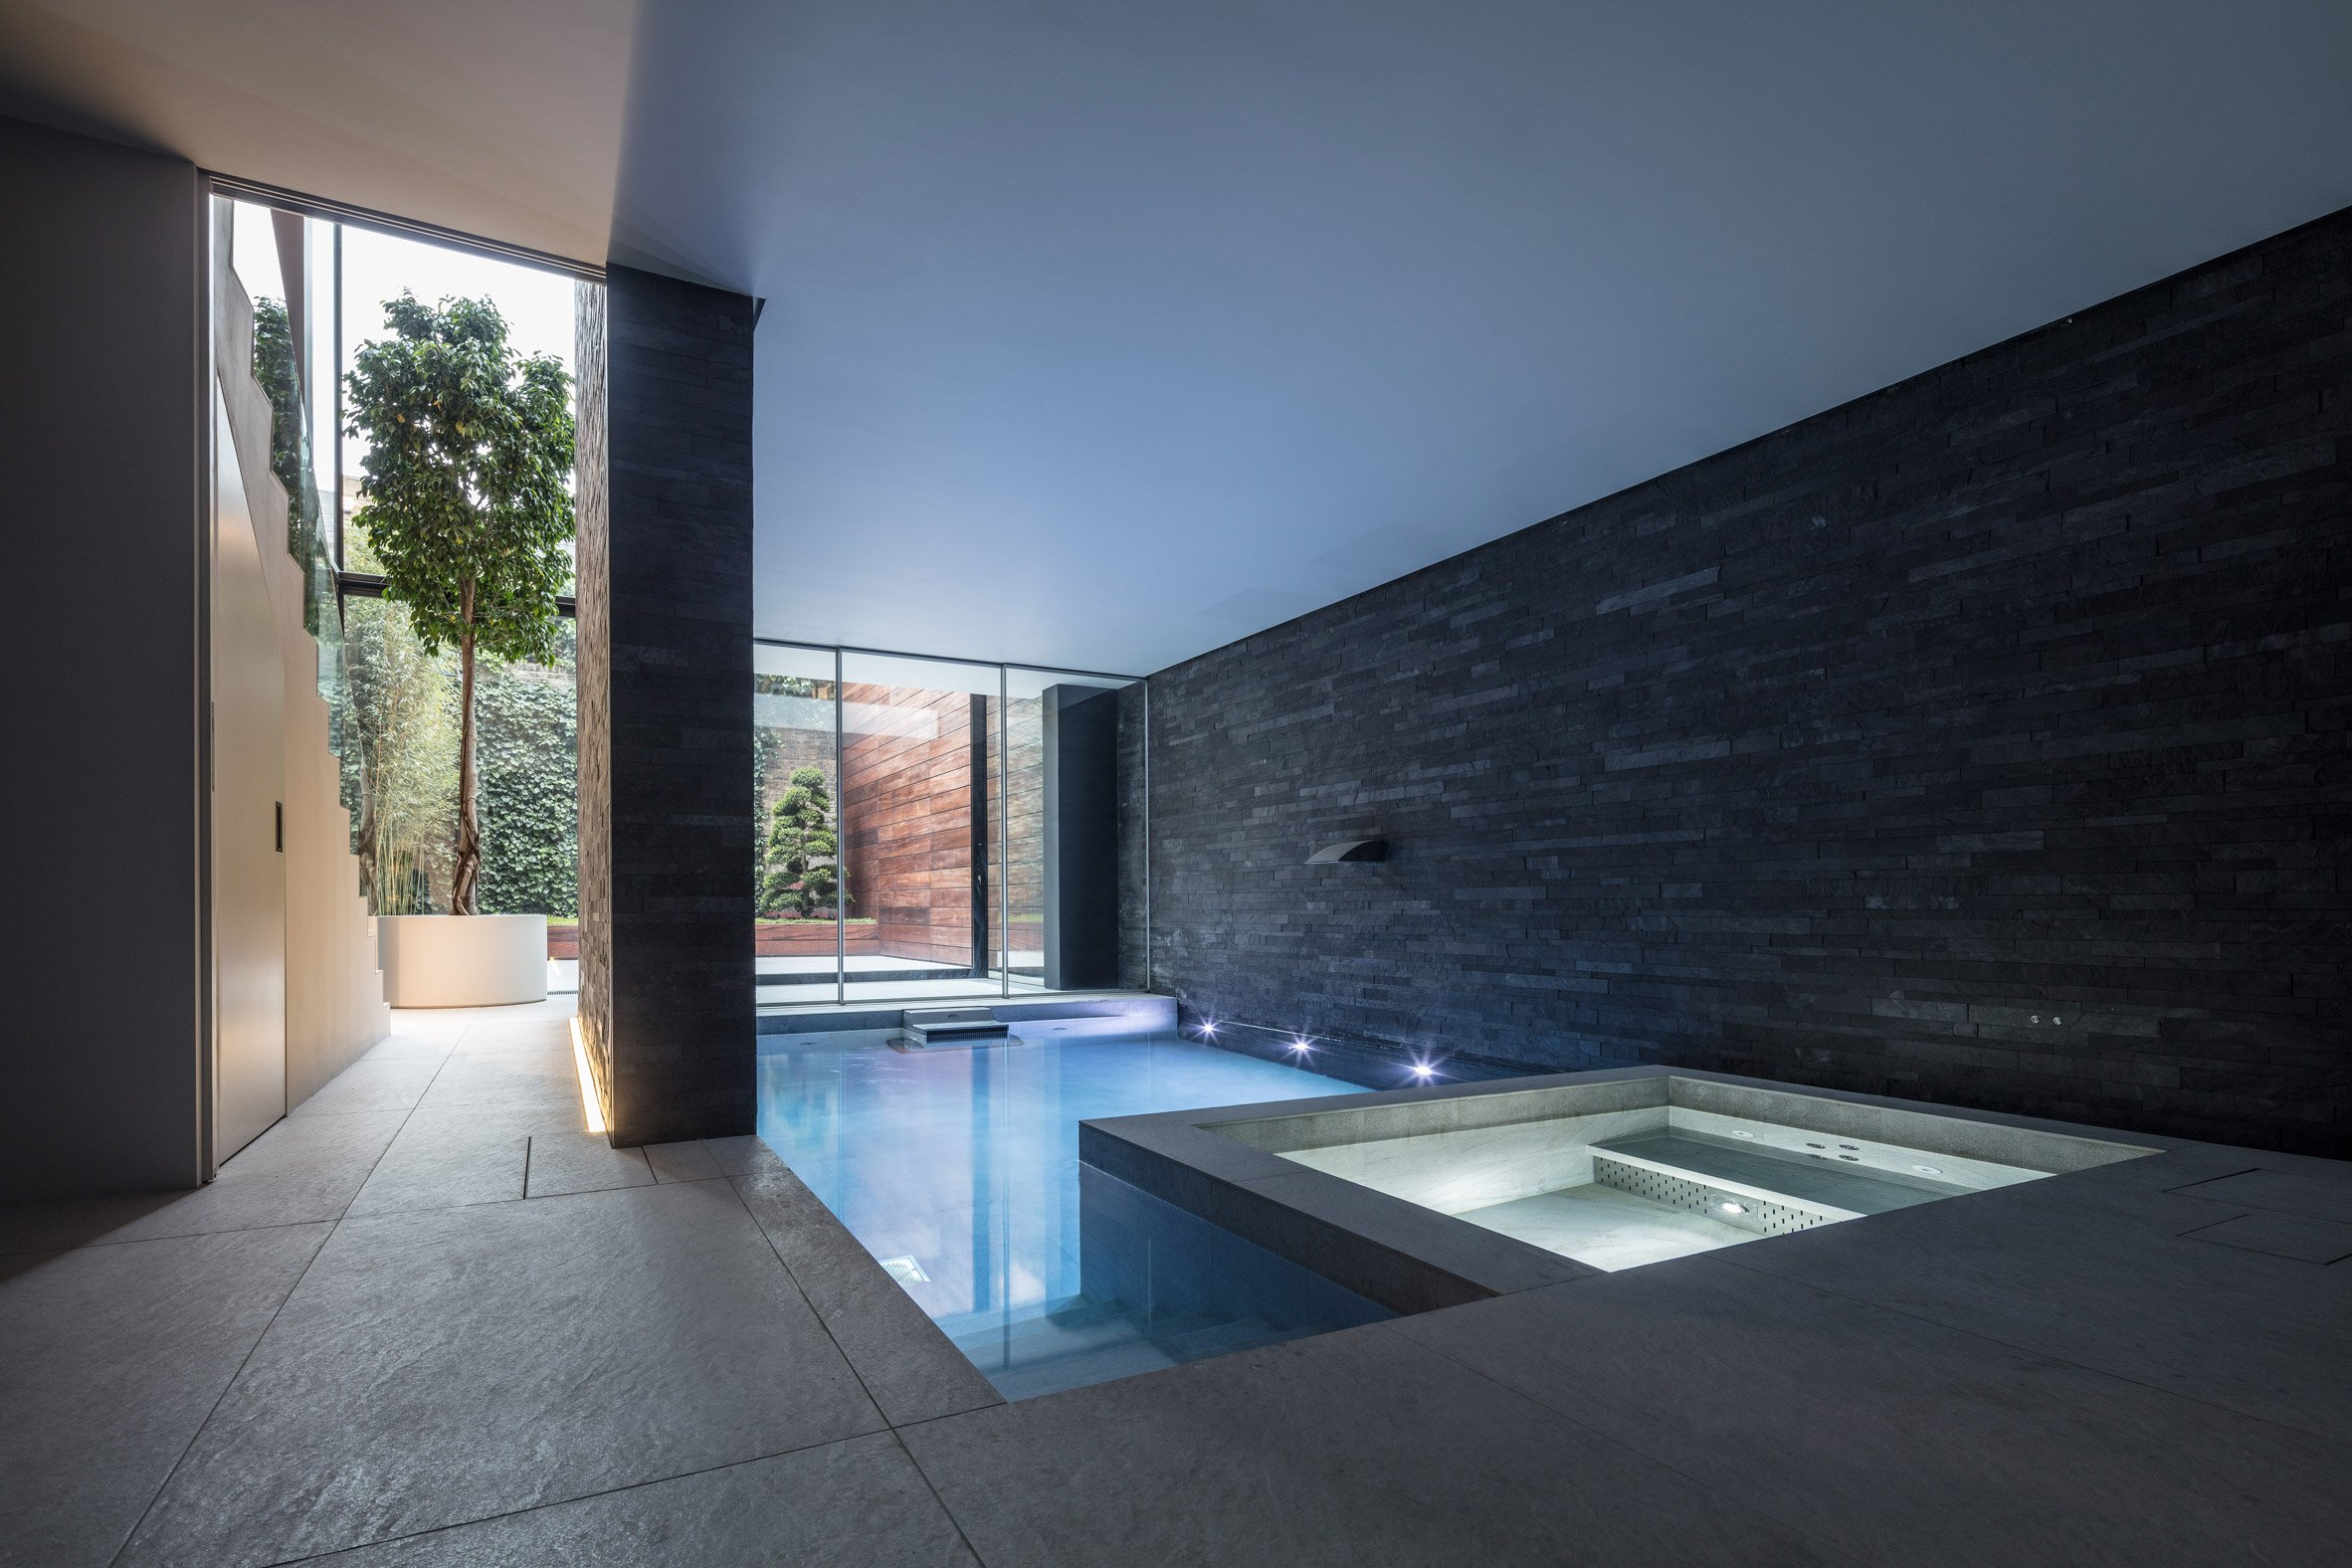 basement pool glass. Plain Basement Victorian Remix By Guarnieri Architects U201c On Basement Pool Glass A